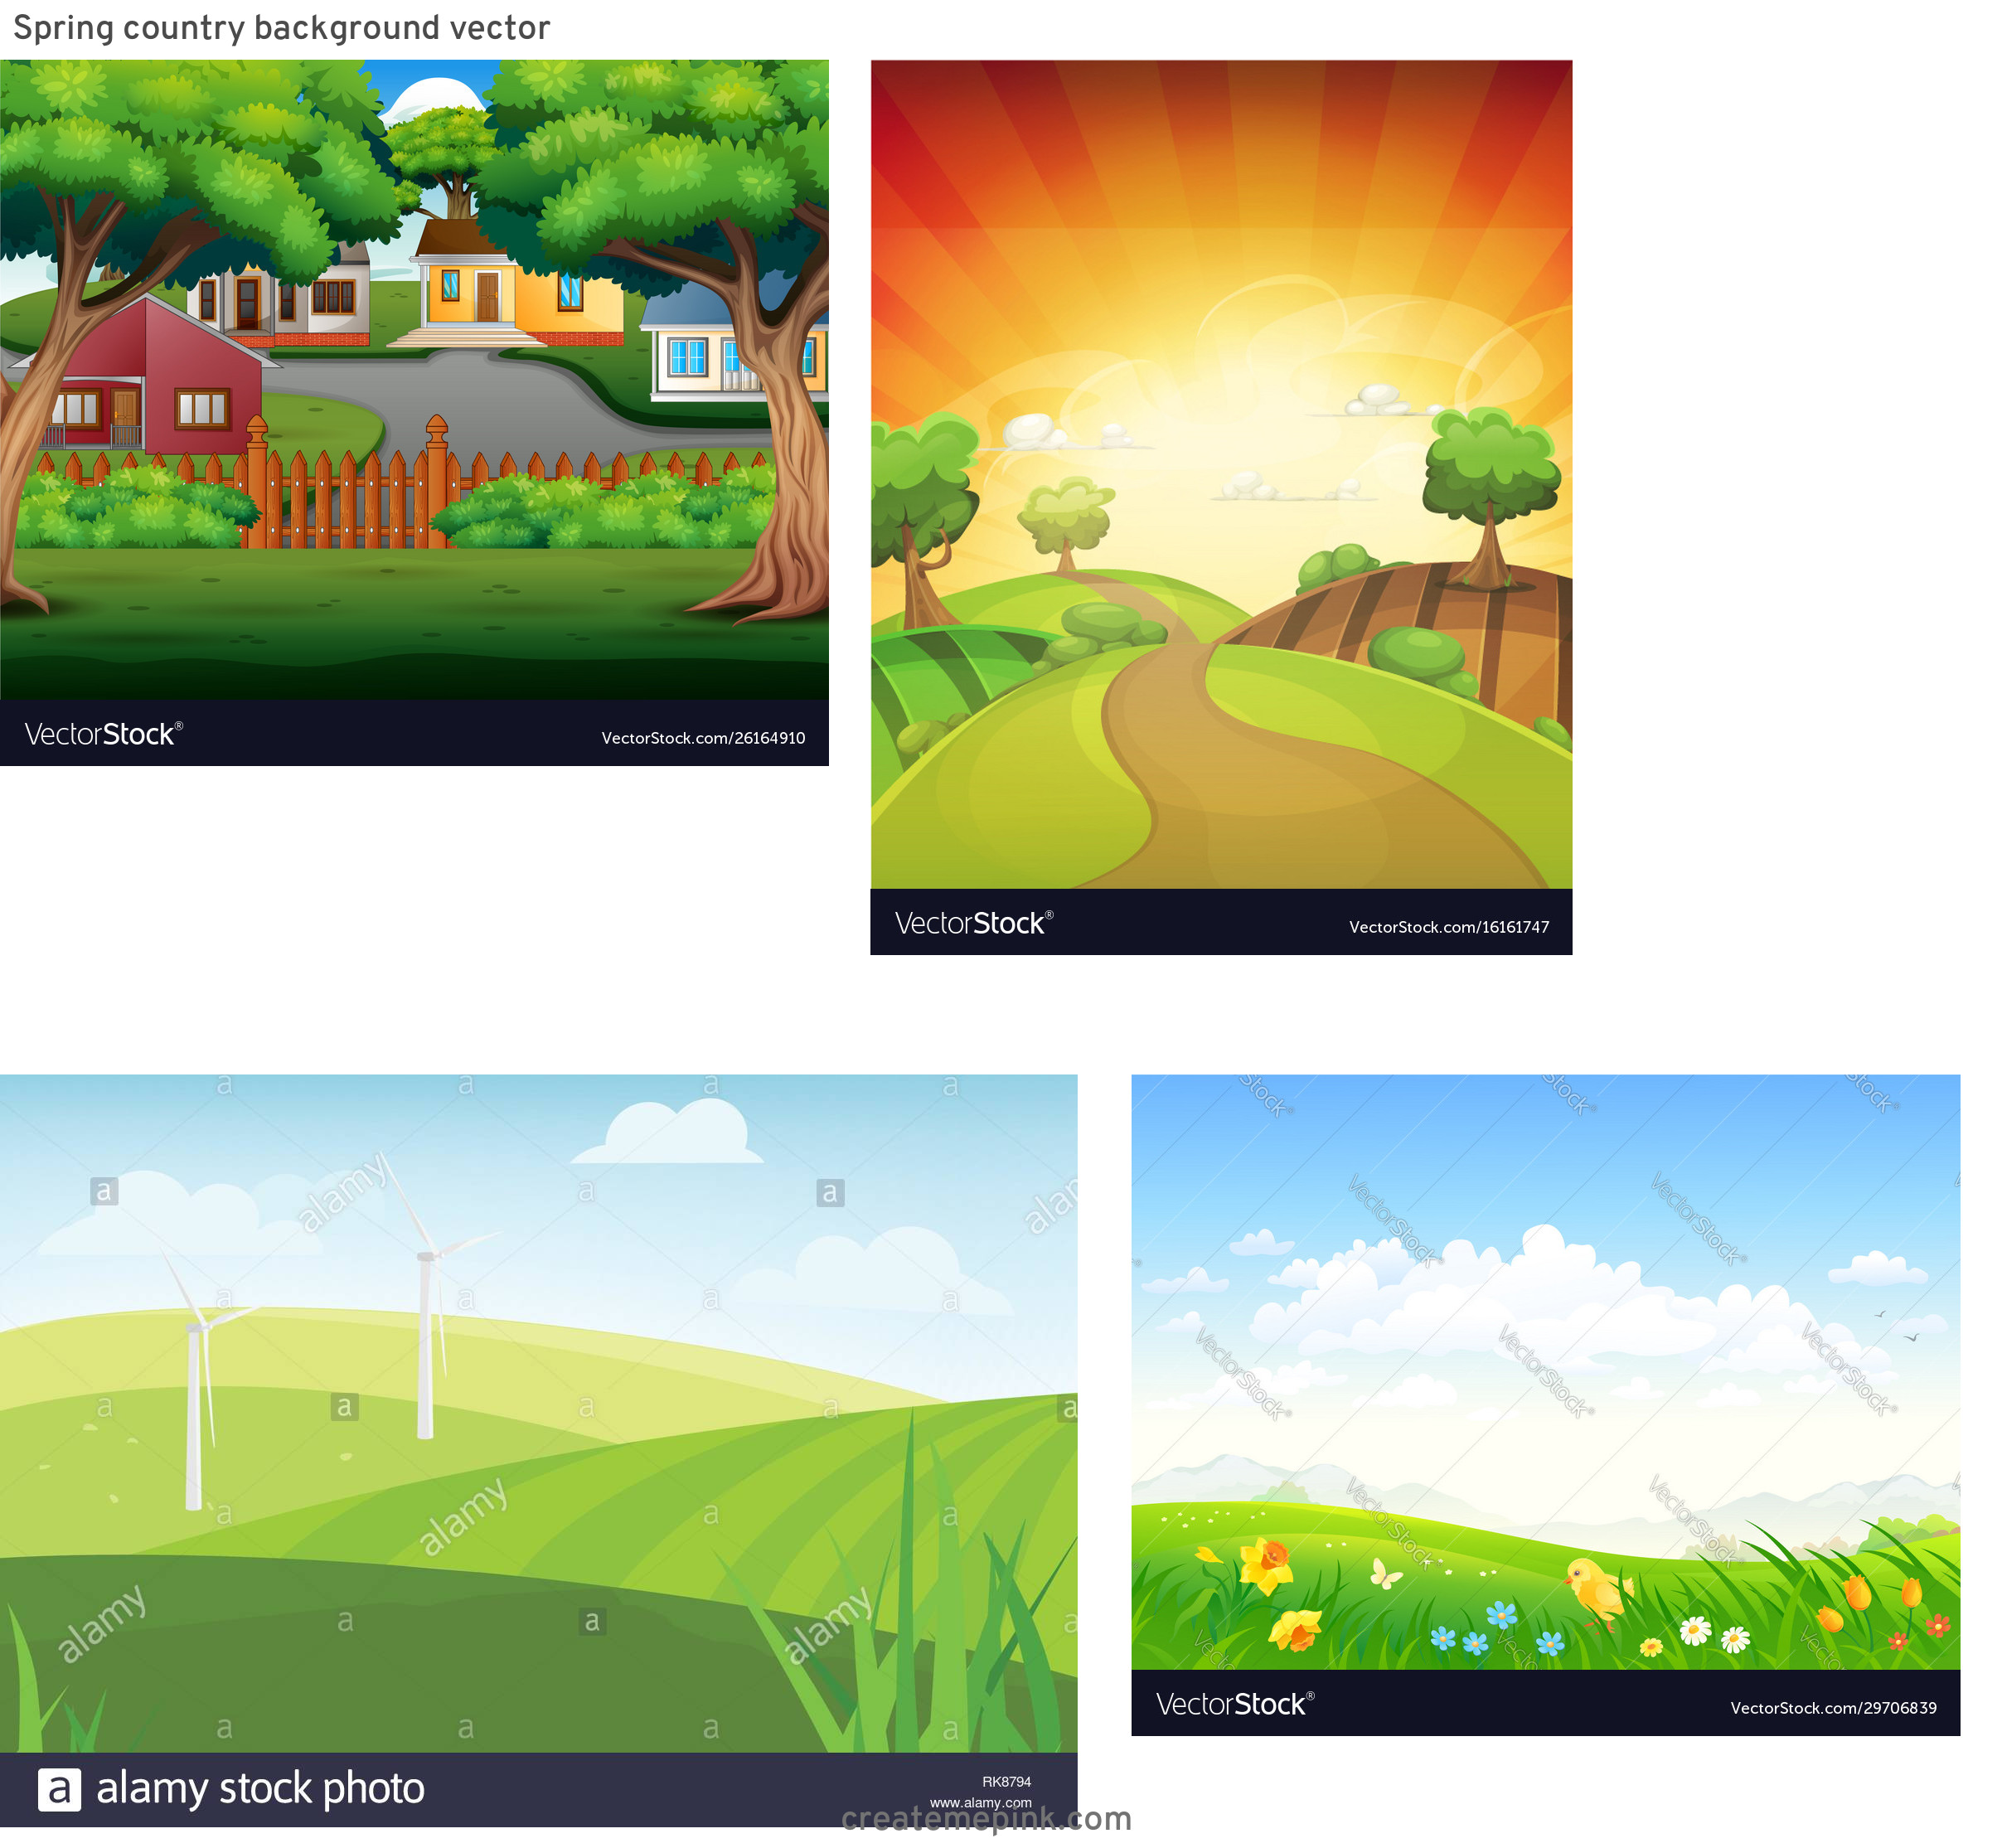 Country Background Vector: Spring Country Background Vector